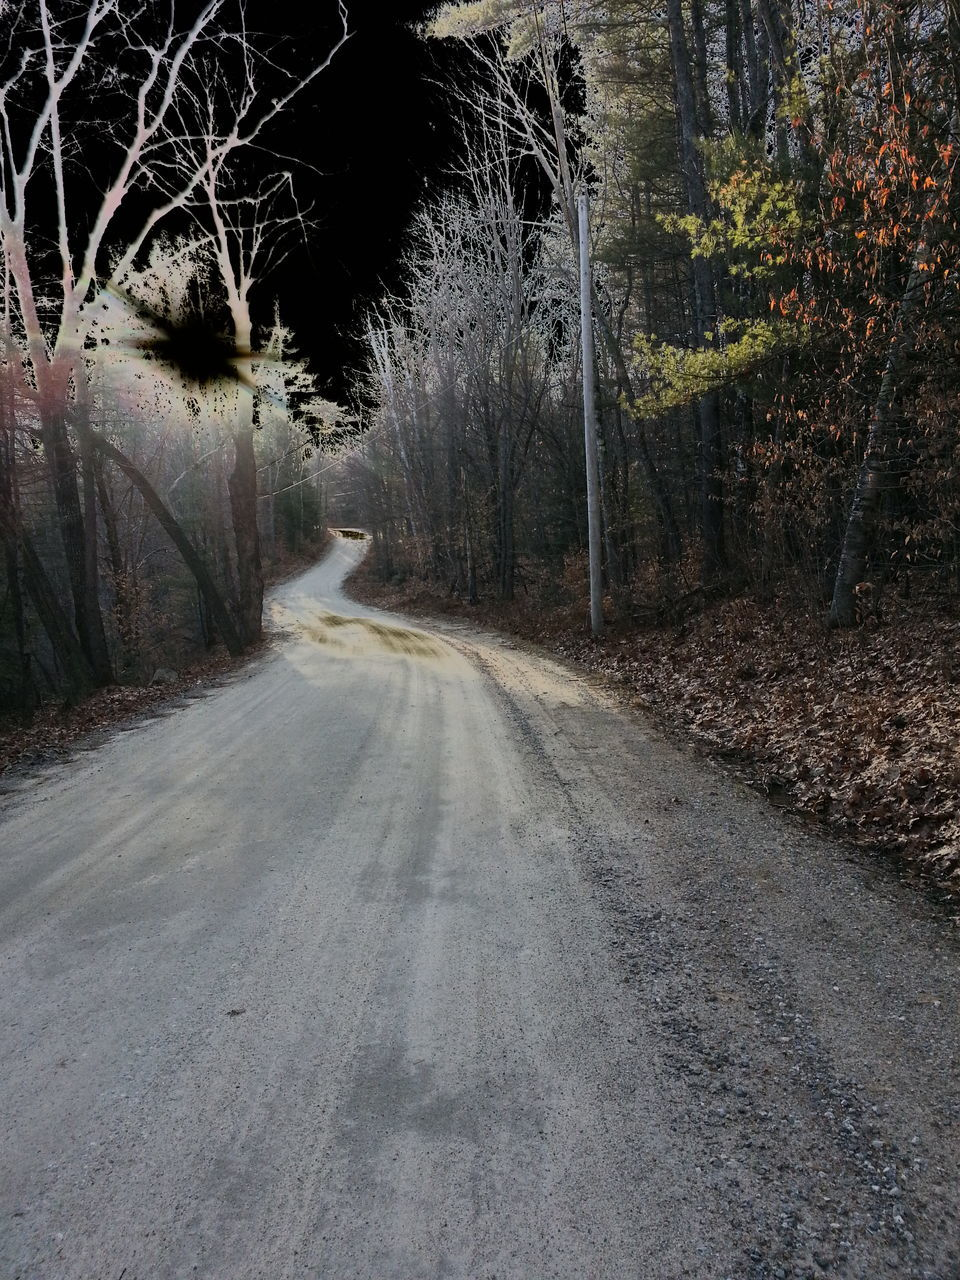 Dirt Road Amidst Bare Trees In Forest